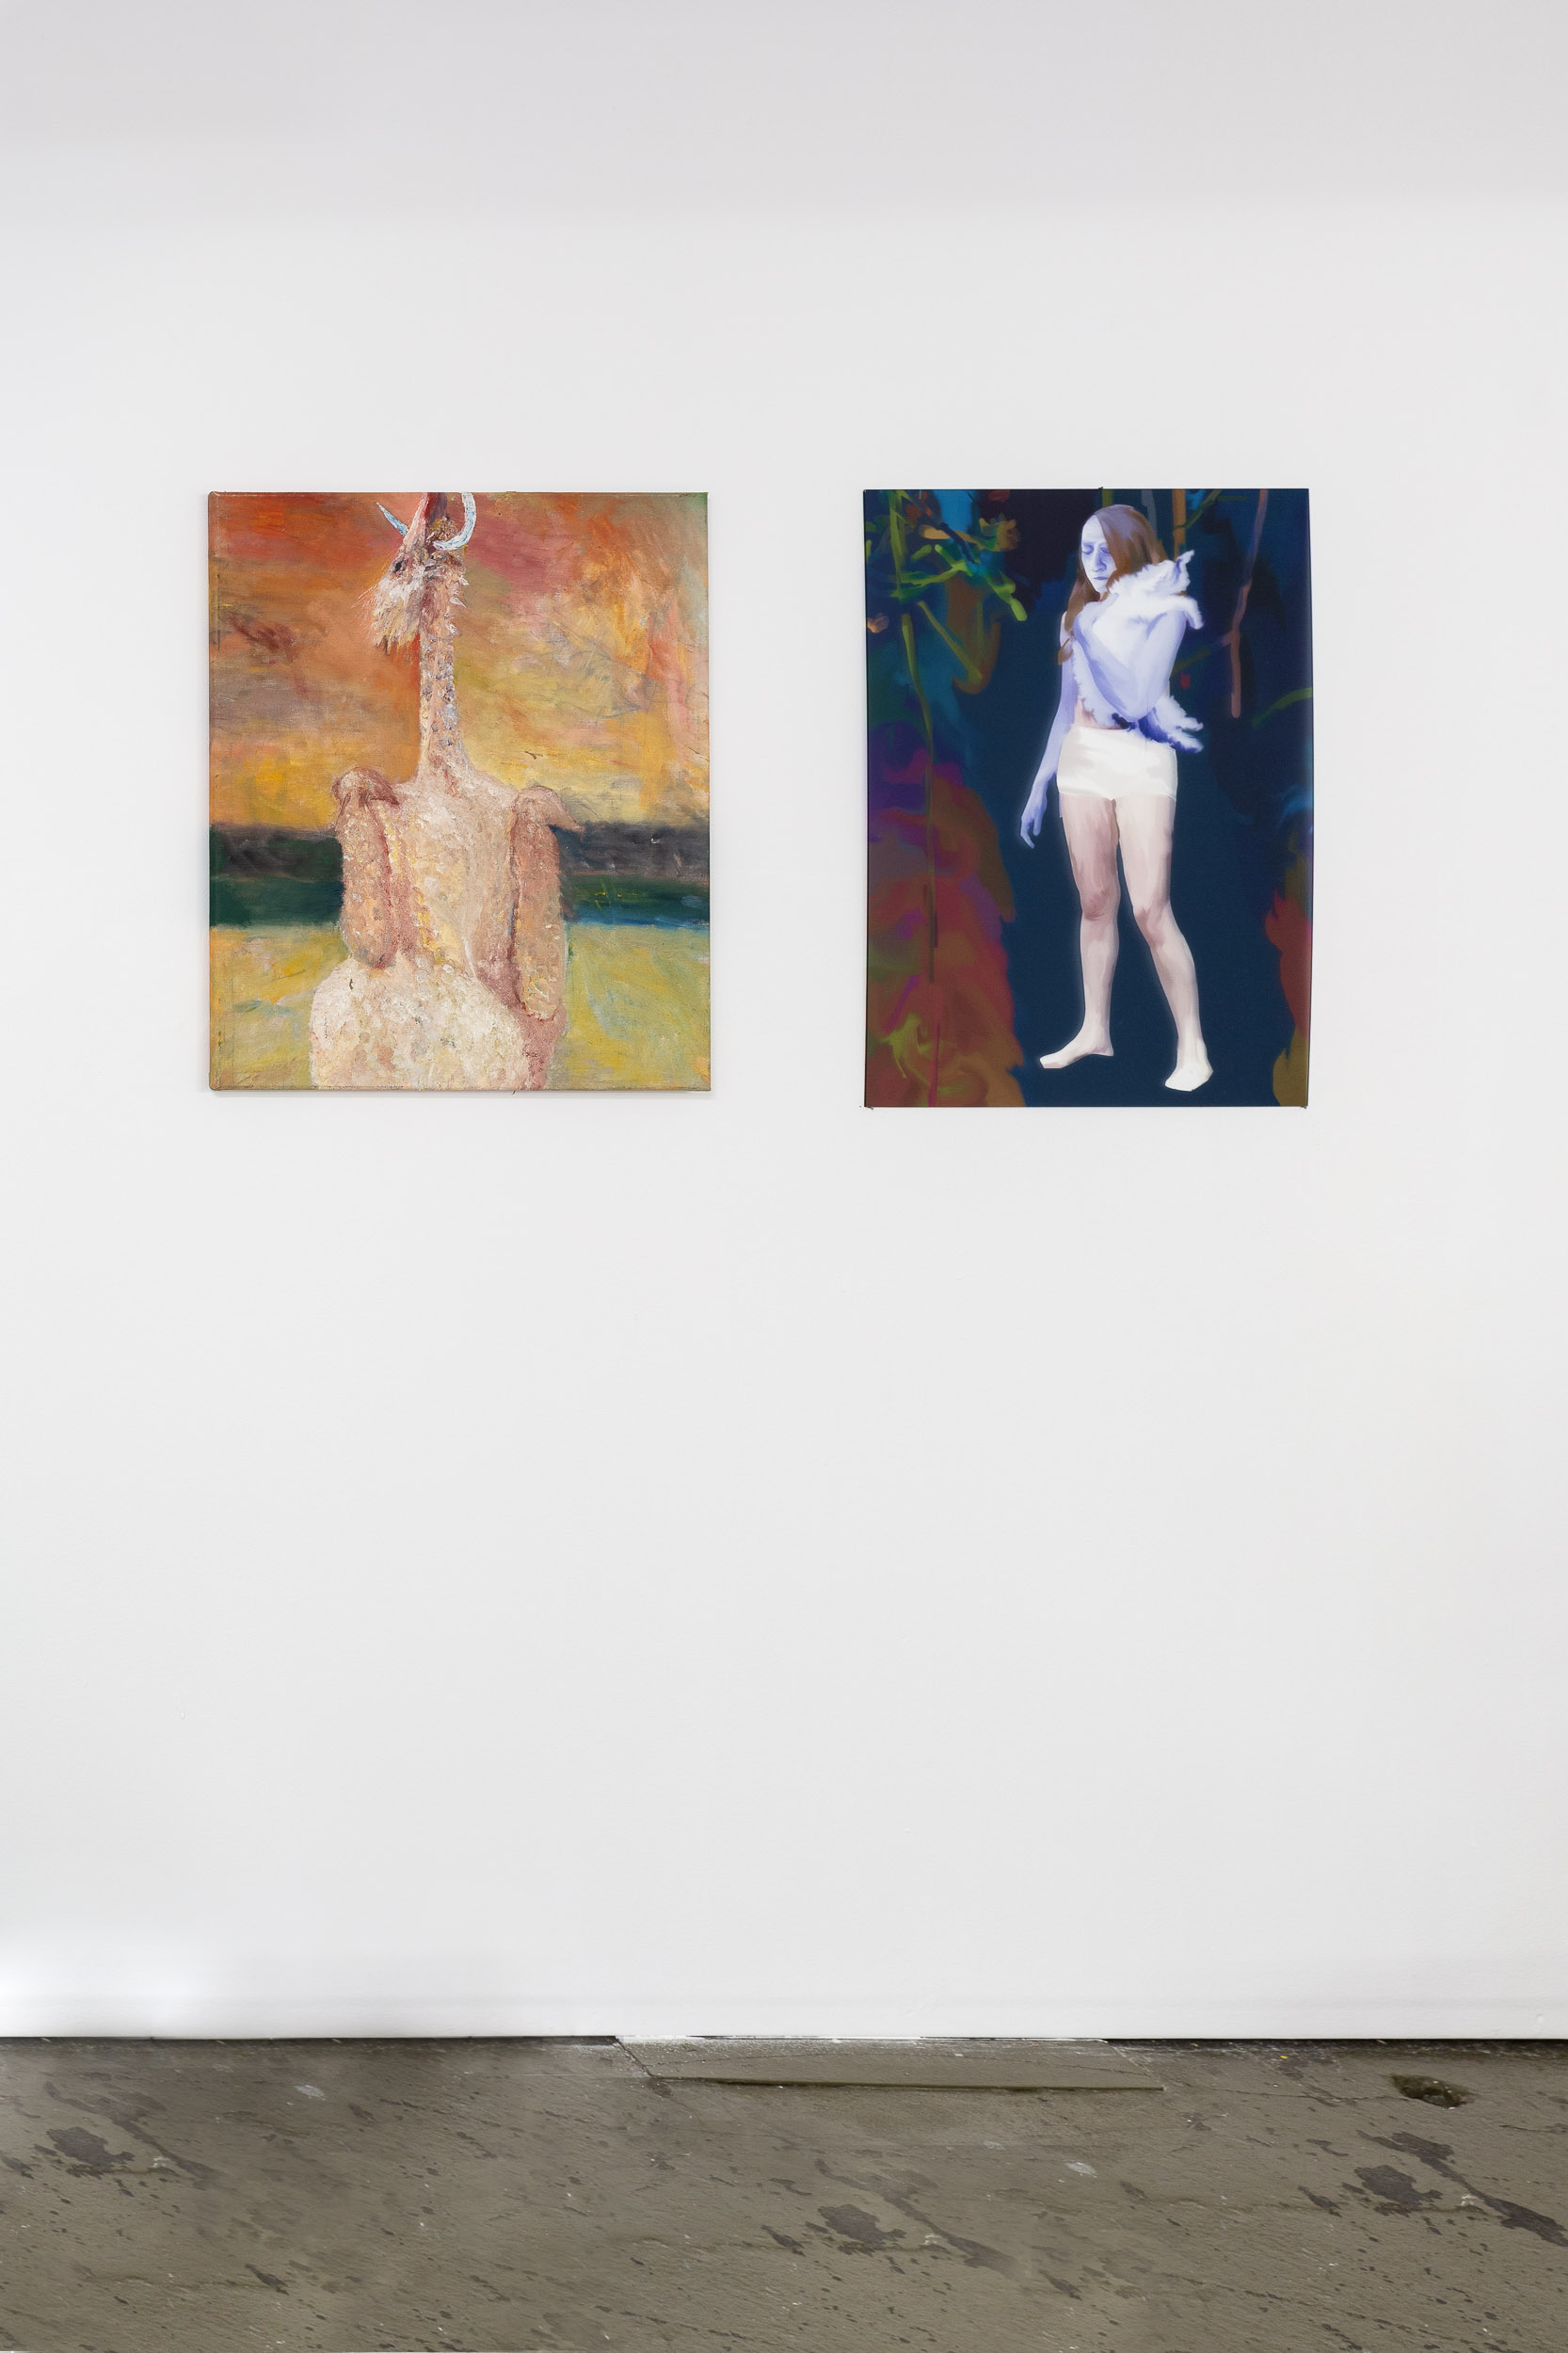 Left: Dieter Hall,  Chicken in Paris,  1993, Oil on canvas, 67.5 x 55 cm Right: Xénia Lucie Laffely,  Alone but not really,  2018, Acrylic print, 70 x 50 cm   Photo: Kilian Bannwart